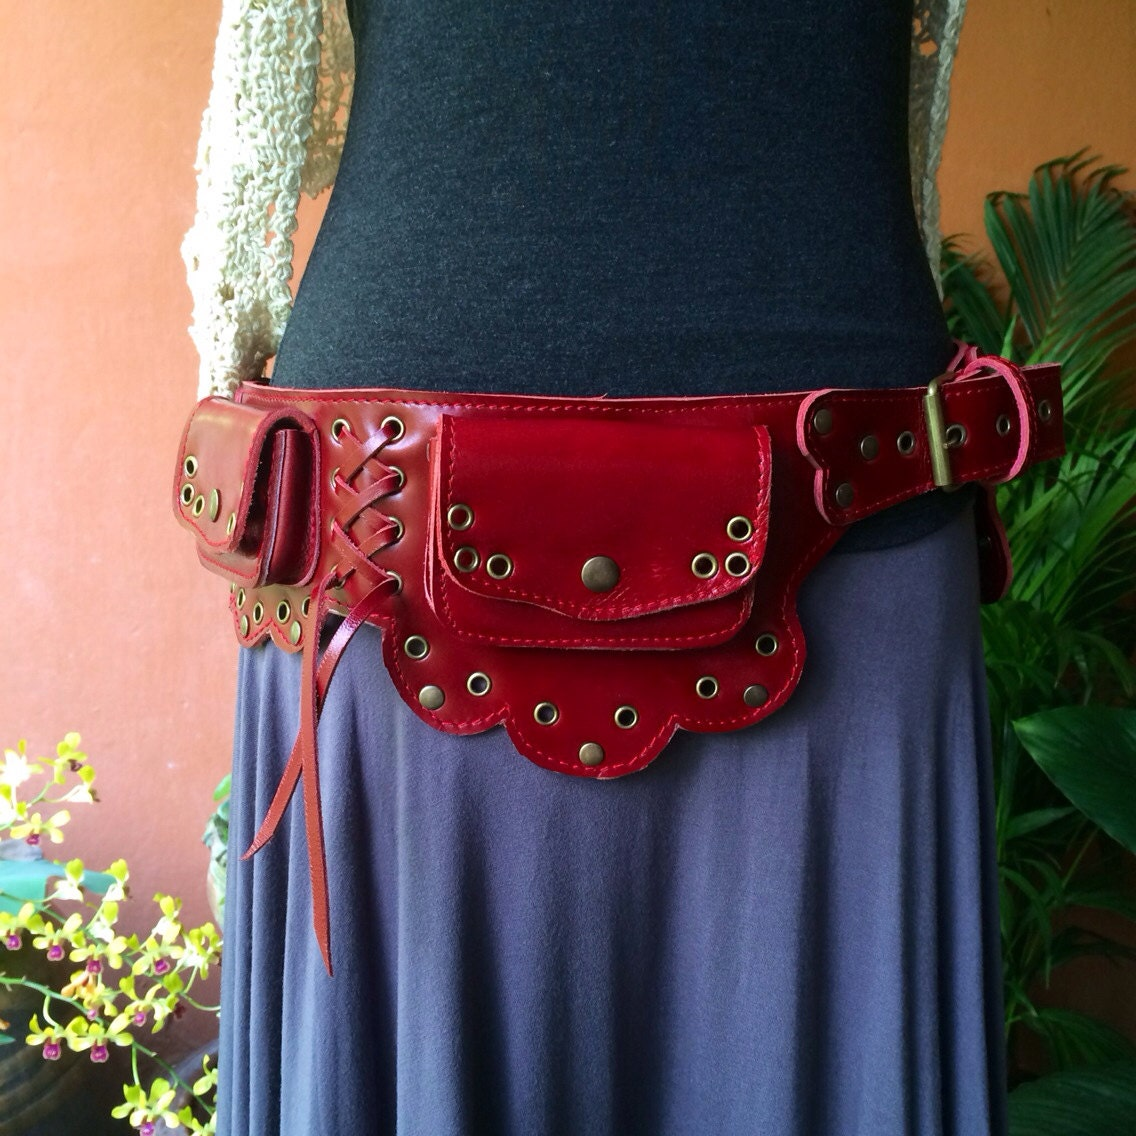 Leather Utility Belt Red The Lotus Pocket Belt,Steampunk